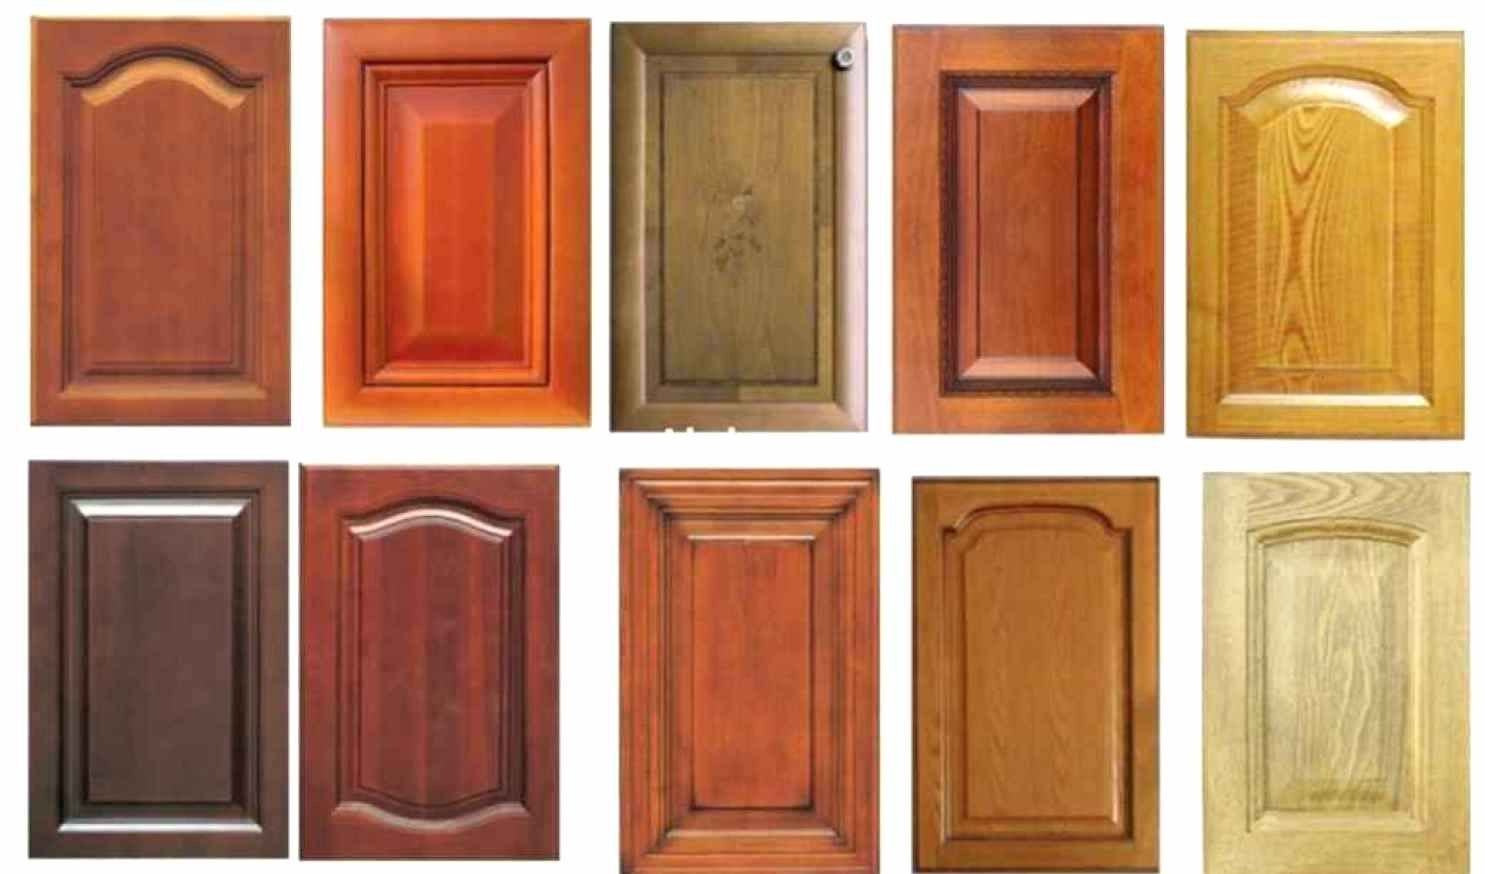 High Quality 2019 Oak Cabinet Doors Home Depot   Kitchen Cabinet Inserts Ideas Check  More At Http: